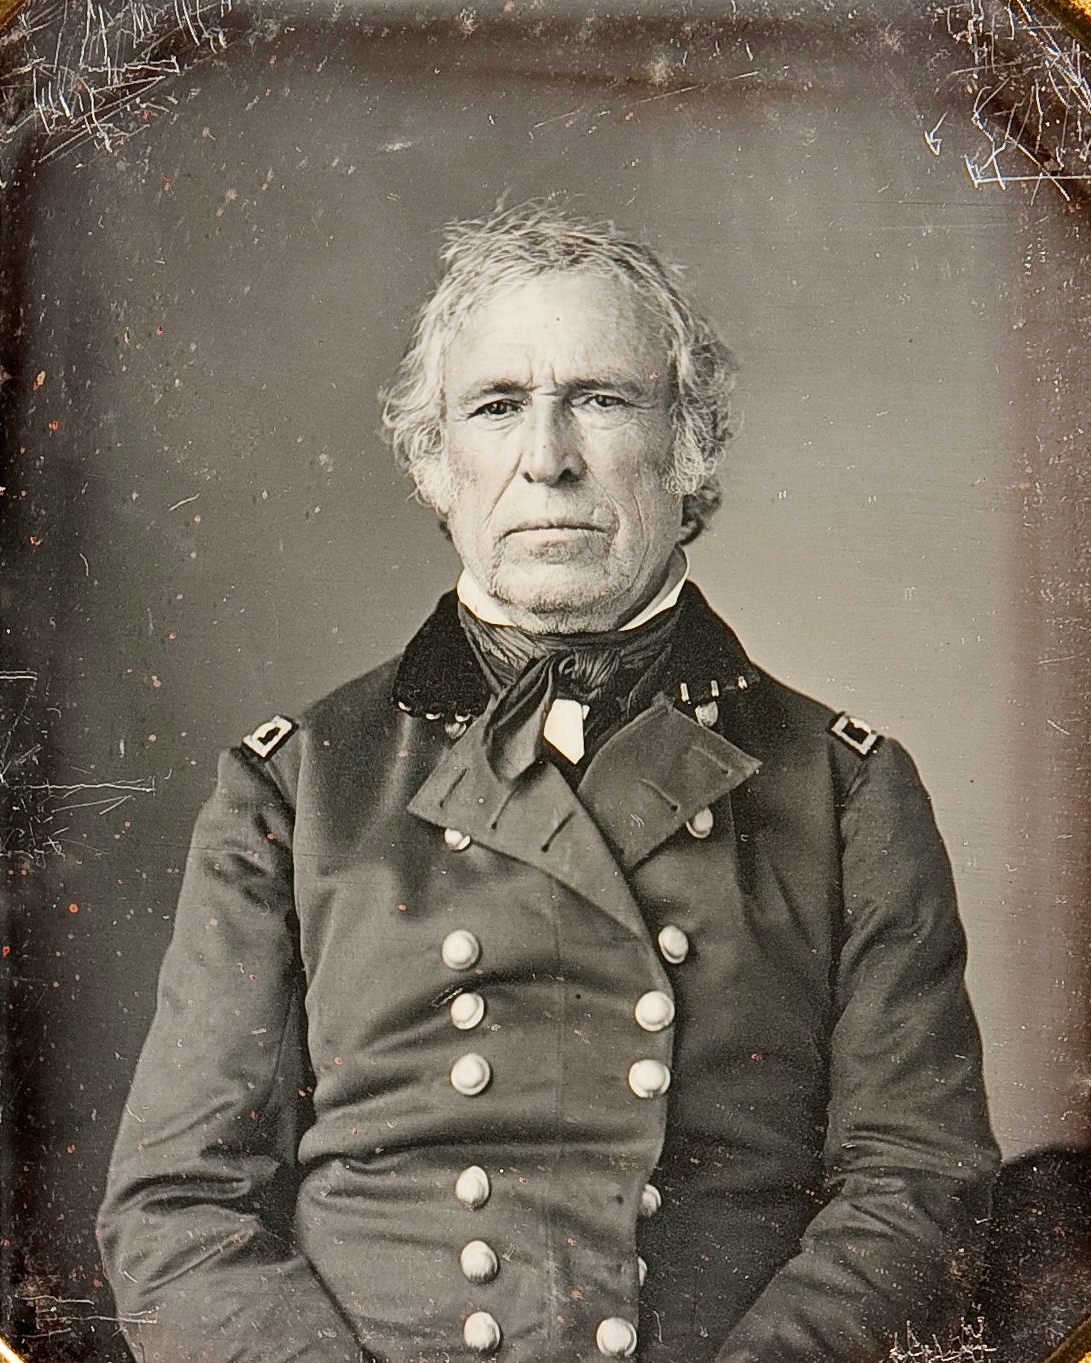 zachary taylor Zachary taylor (november 24, 1784 – july 9, 1850) was the 12th president of the united states he served as president from 1849 until his death in 1850.